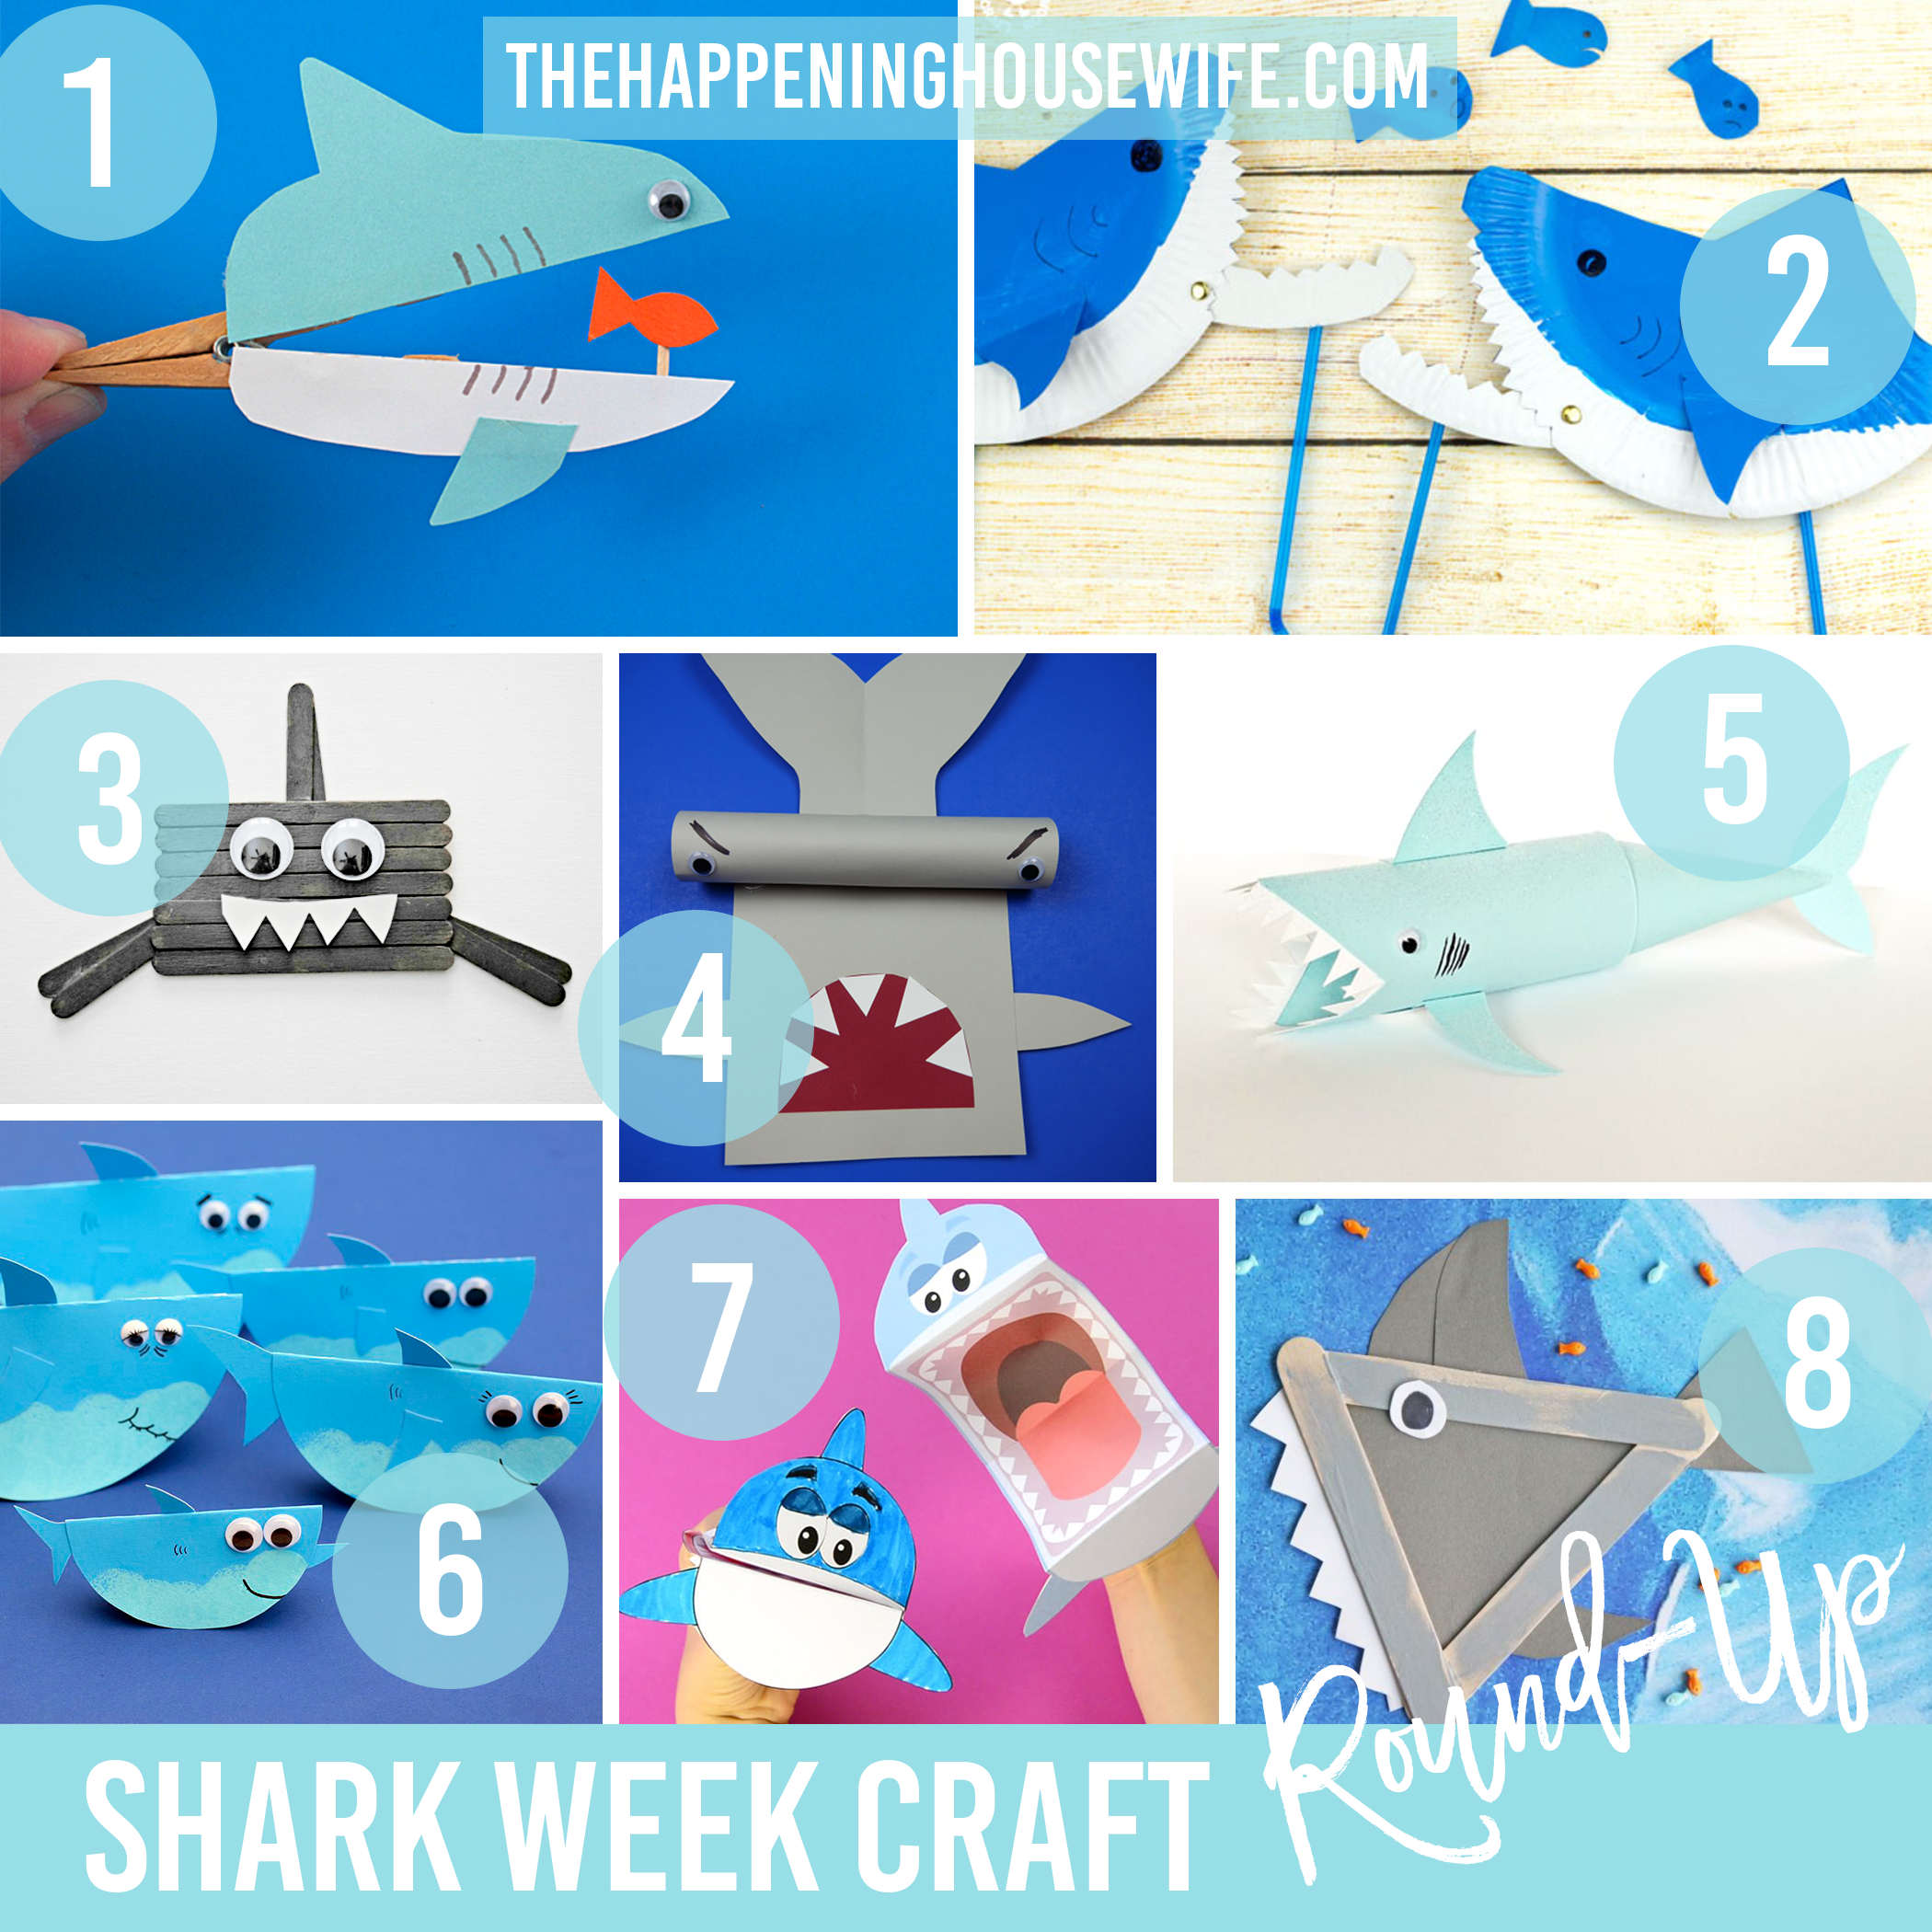 Shark Week Crafts.png